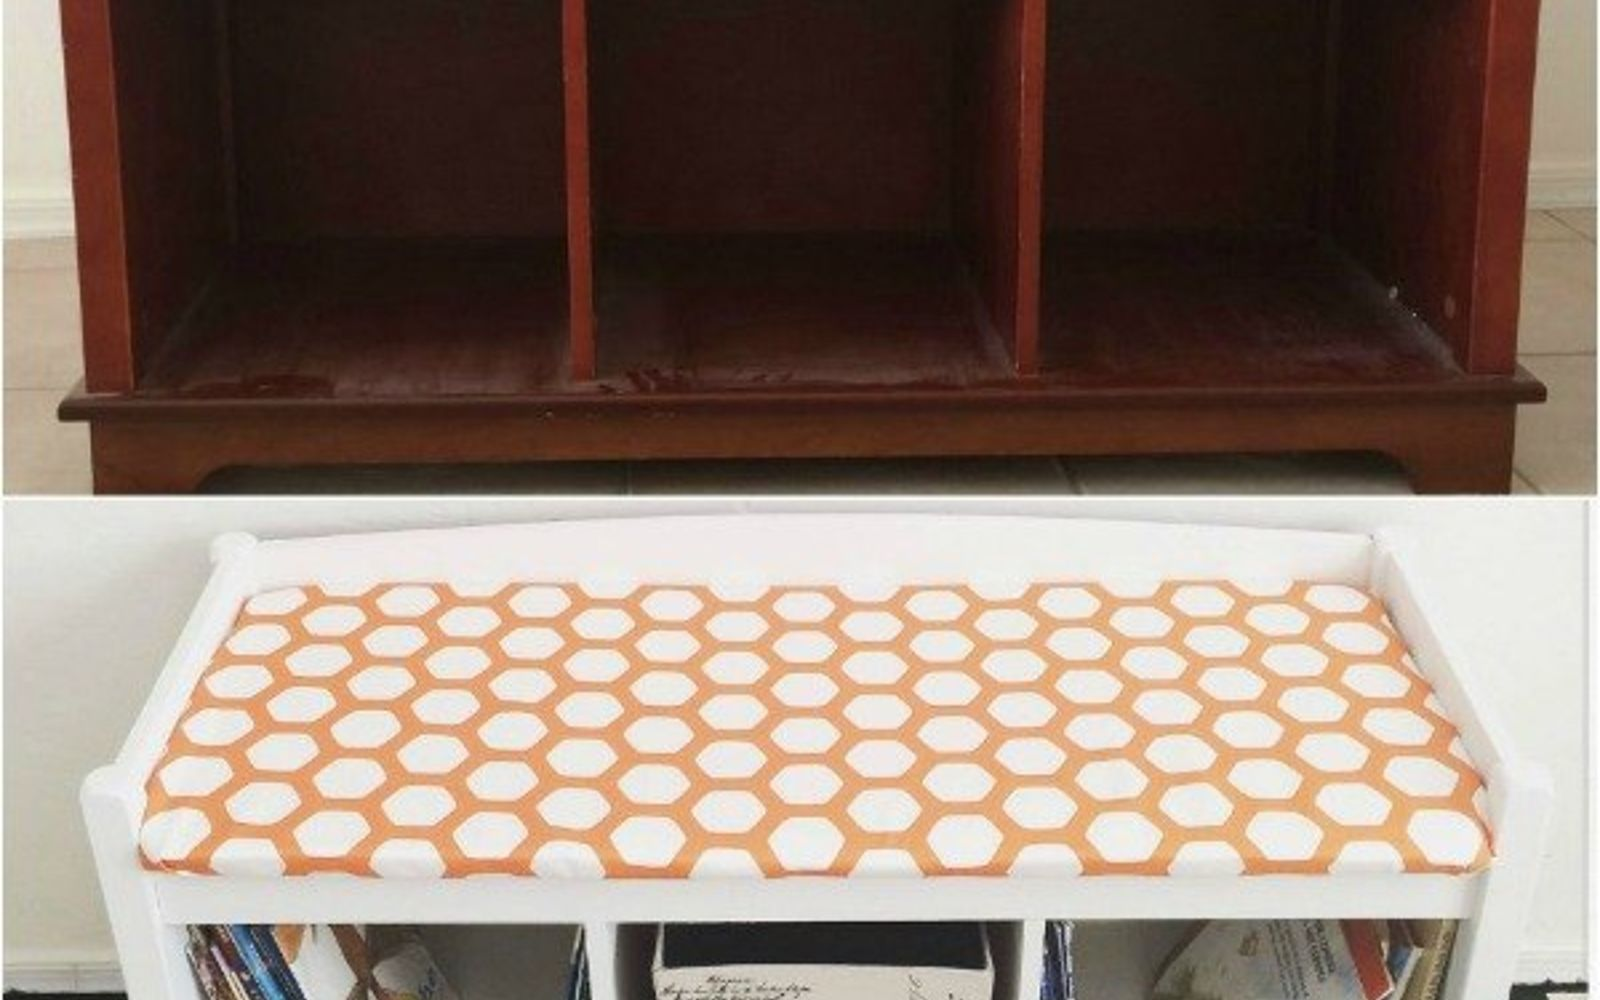 s 14 shocking furniture transformations using fabric, painted furniture, reupholster, Clunky Brown Bench Gets a Magnificent Redo